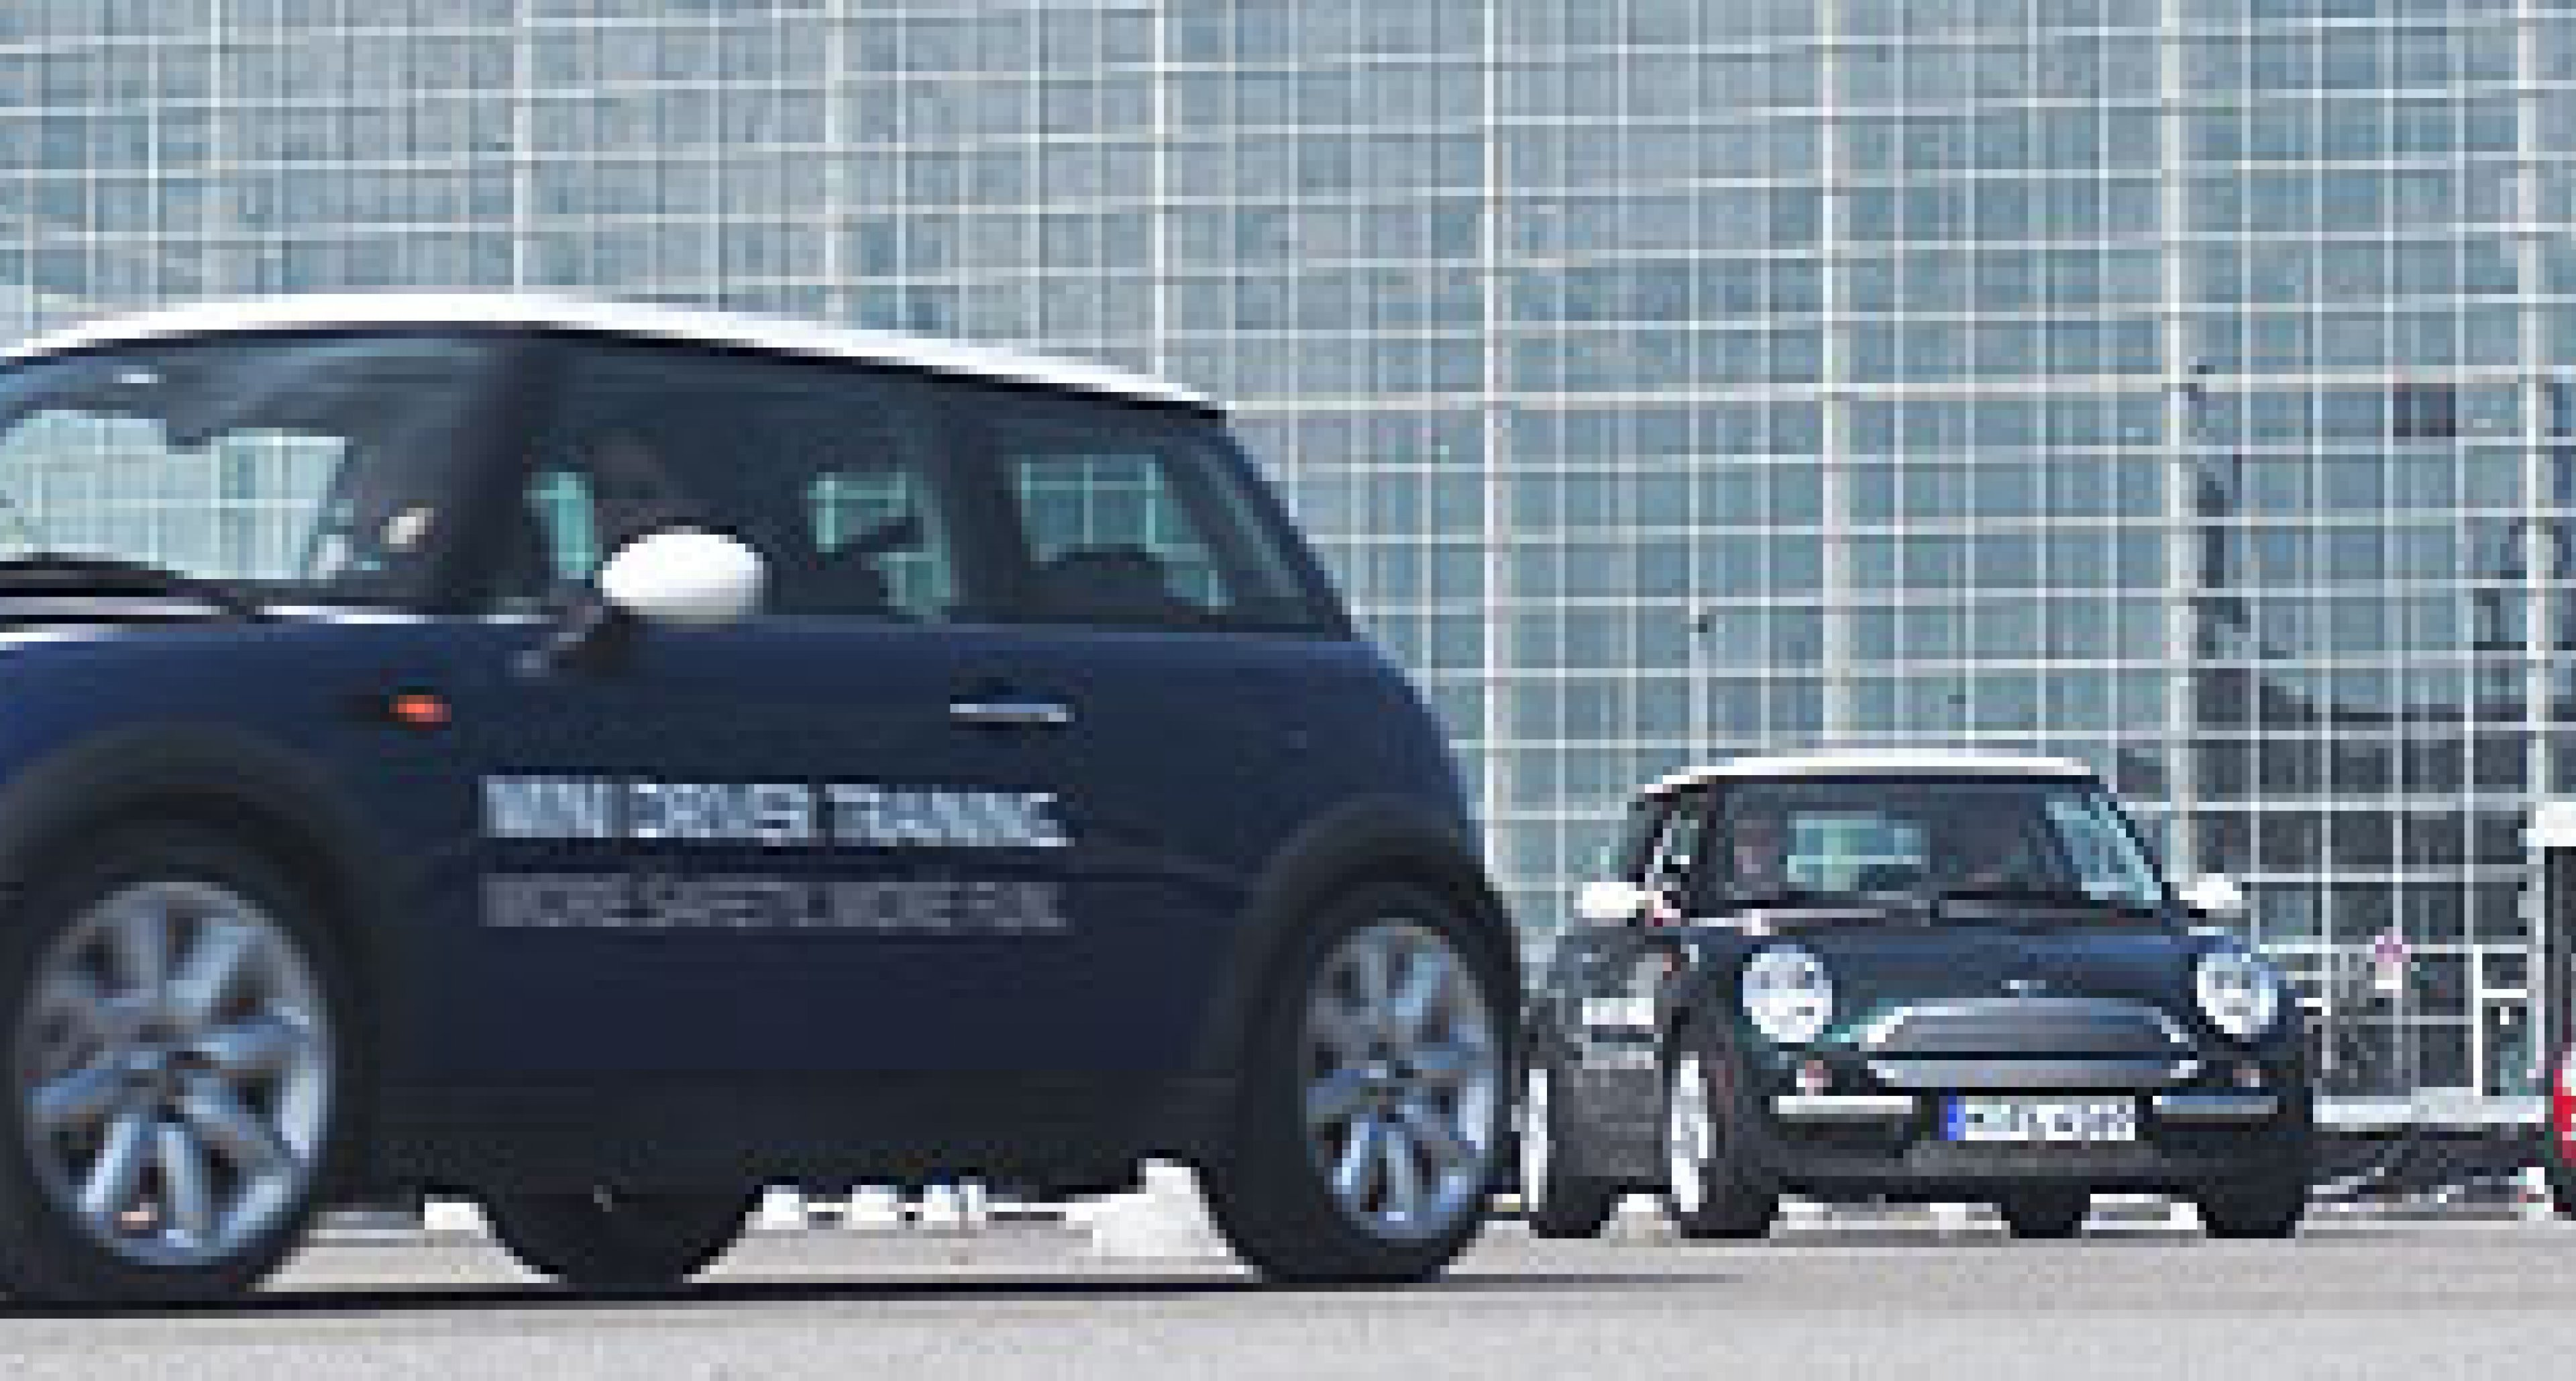 Mini: Safety meets Fun